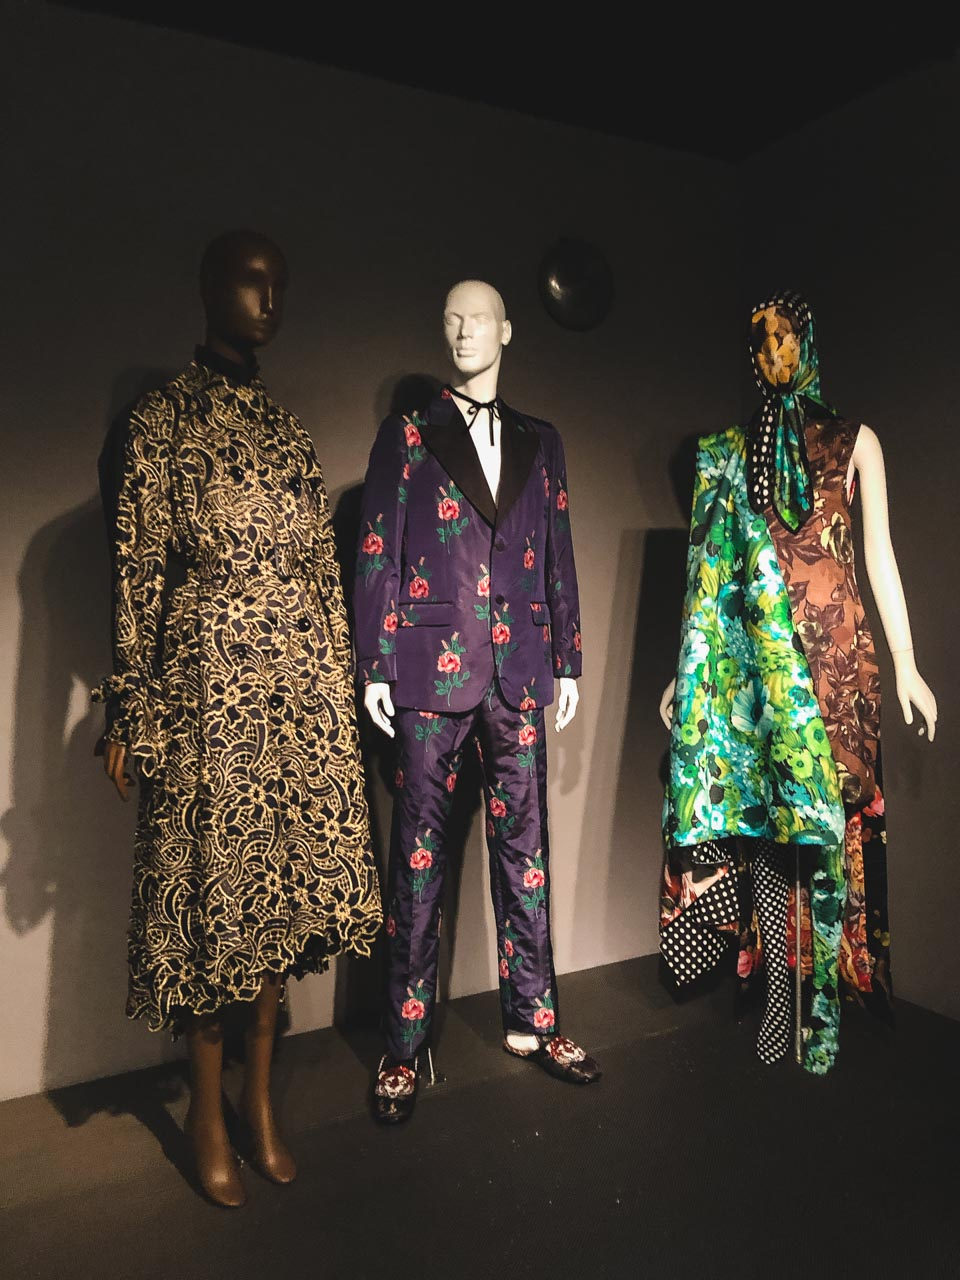 Maximalist garments on display at the Museum at the Fashion Institute of Technology in New York